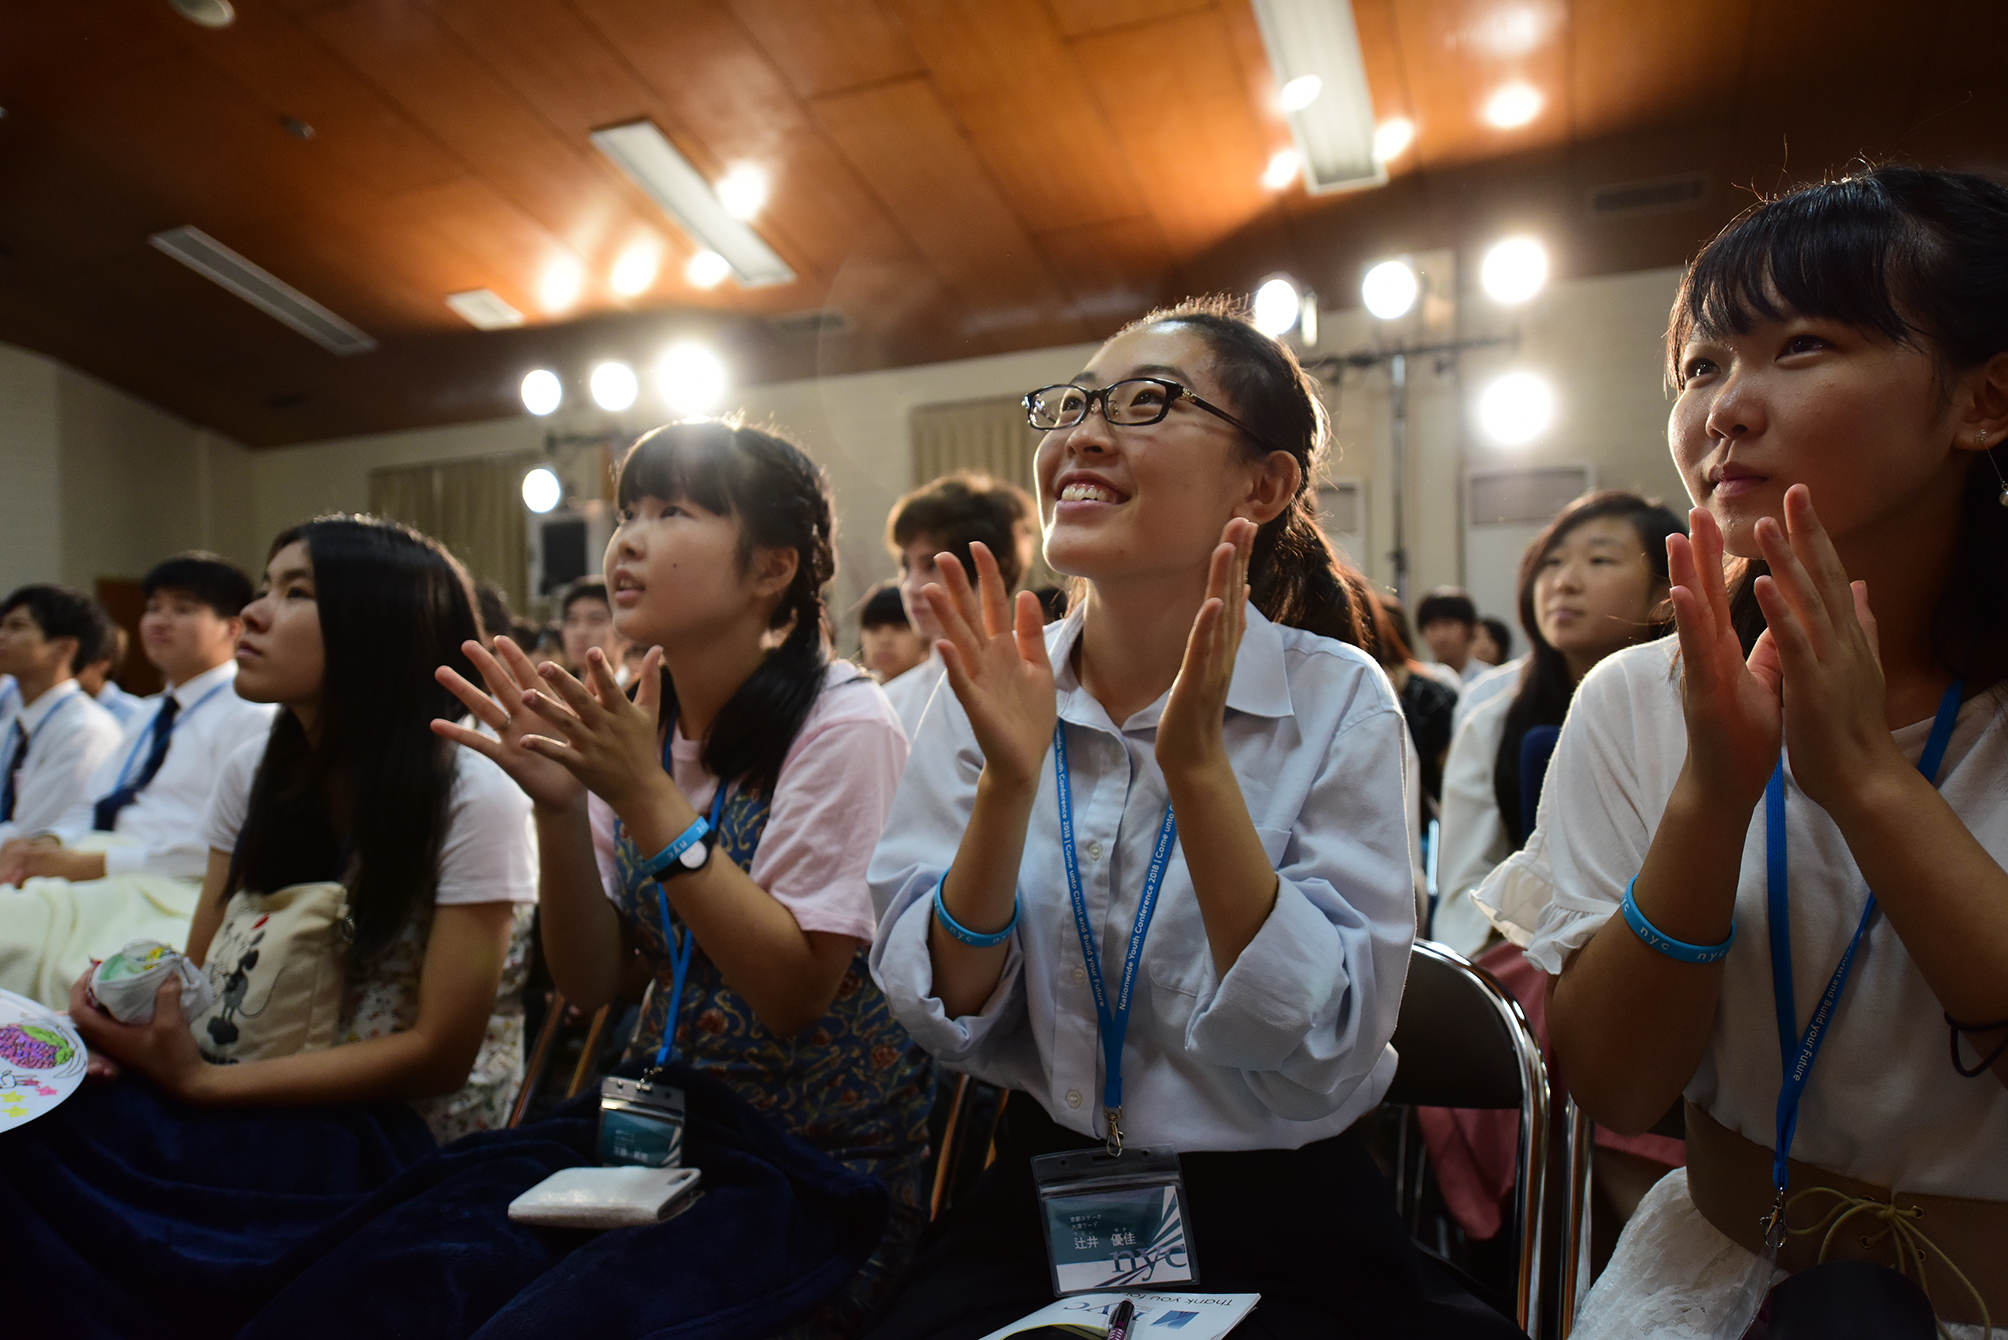 Youth in Japan listen during a Face to Face event with Elder Gary E. Stevenson of the Quorum of the Twelve Apostles and his wife, Sister Lesa Stevenson, on Aug. 14.